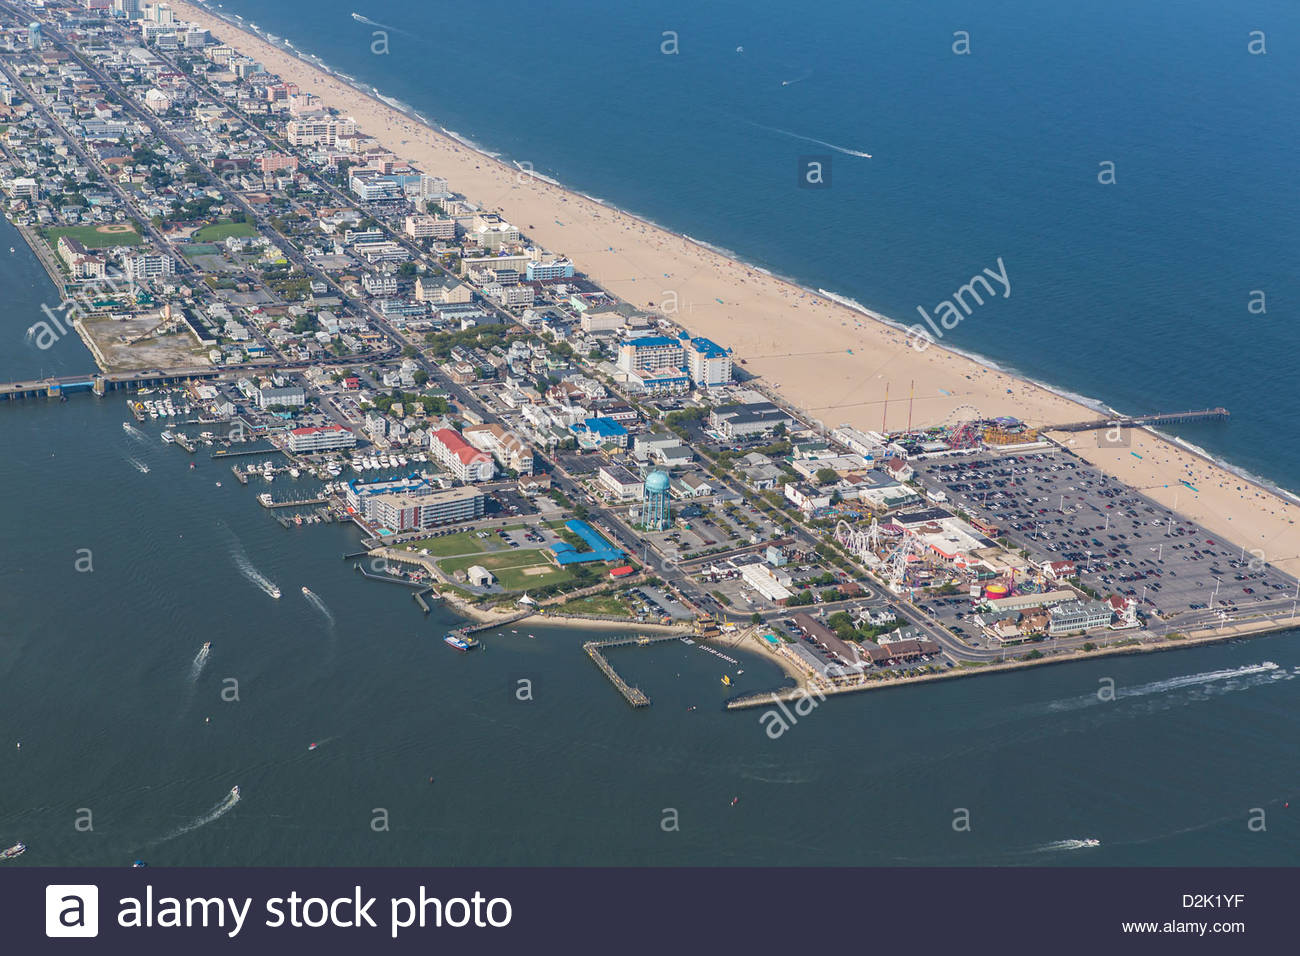 Aerial View Of Ocean City Md Located On The East Coast Of